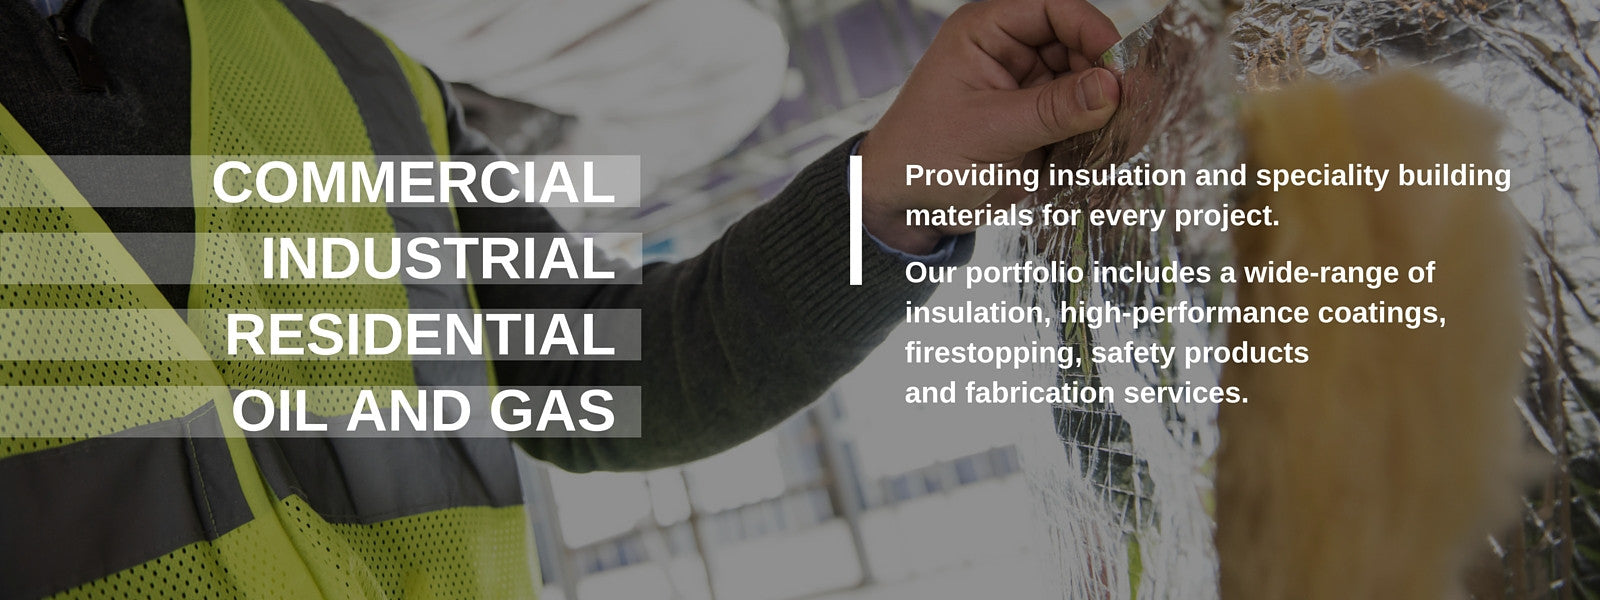 api-distribution-insulation-commercial-industrial-residential-oil-gas-mn-wy-nd-sd-home-image